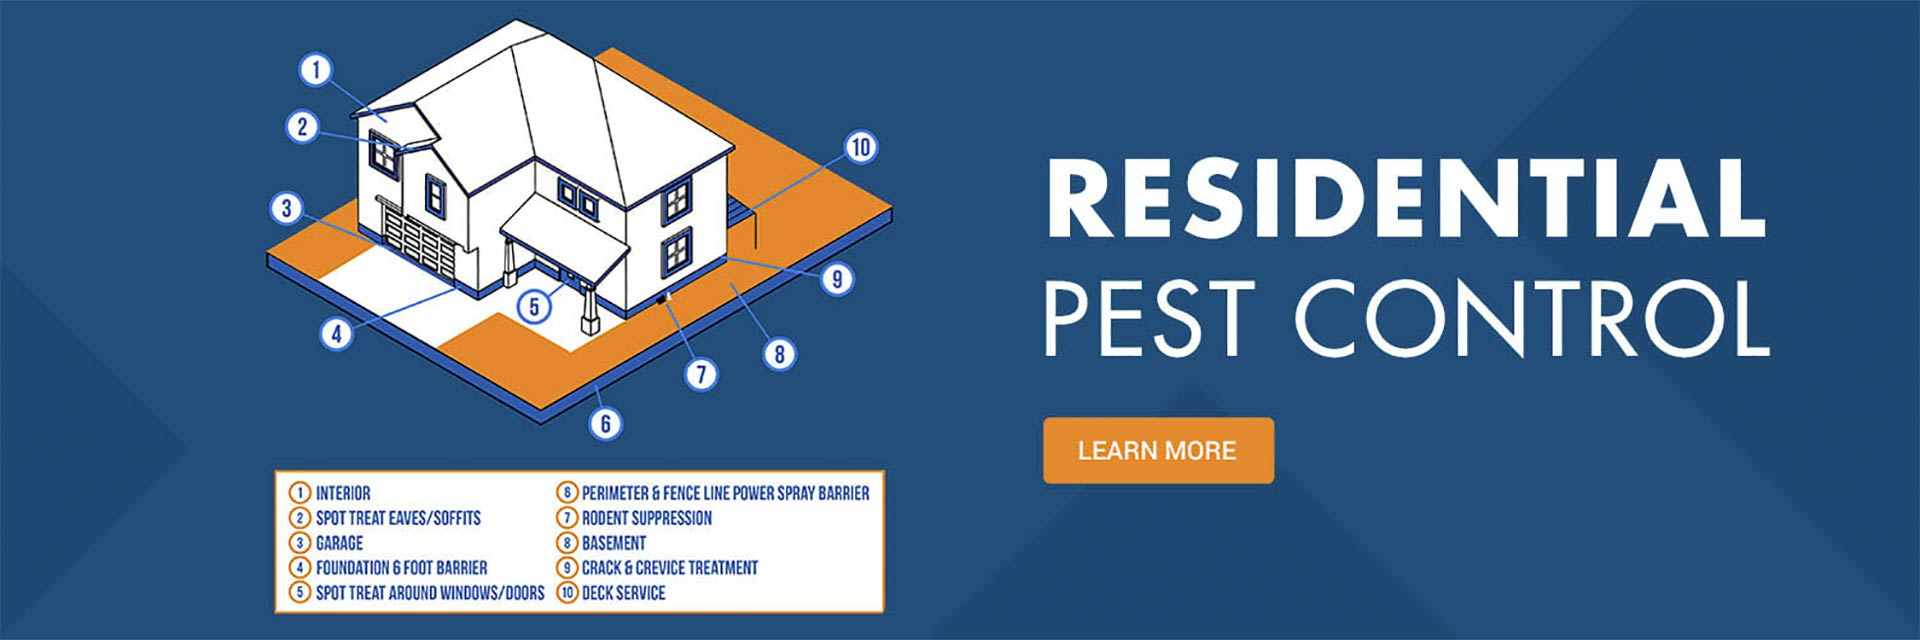 Areas of a residential home where H2 Pest Control, a local pest control company in Utah, sprays or applies treatment